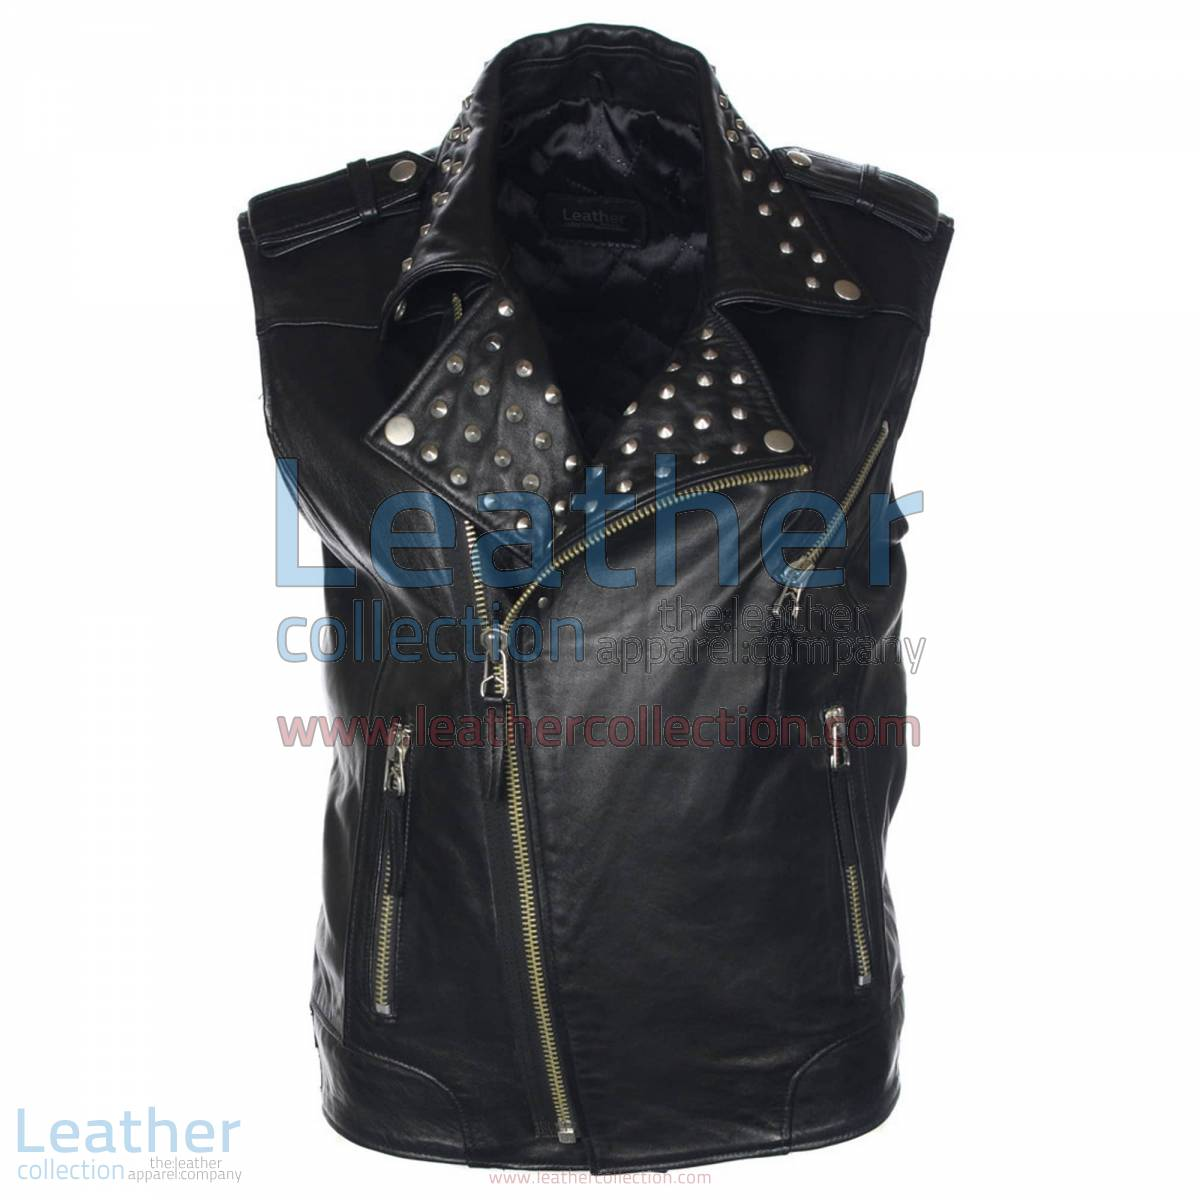 Men Studded Collar Biker Leather Vest | studded leather vest,studded vest